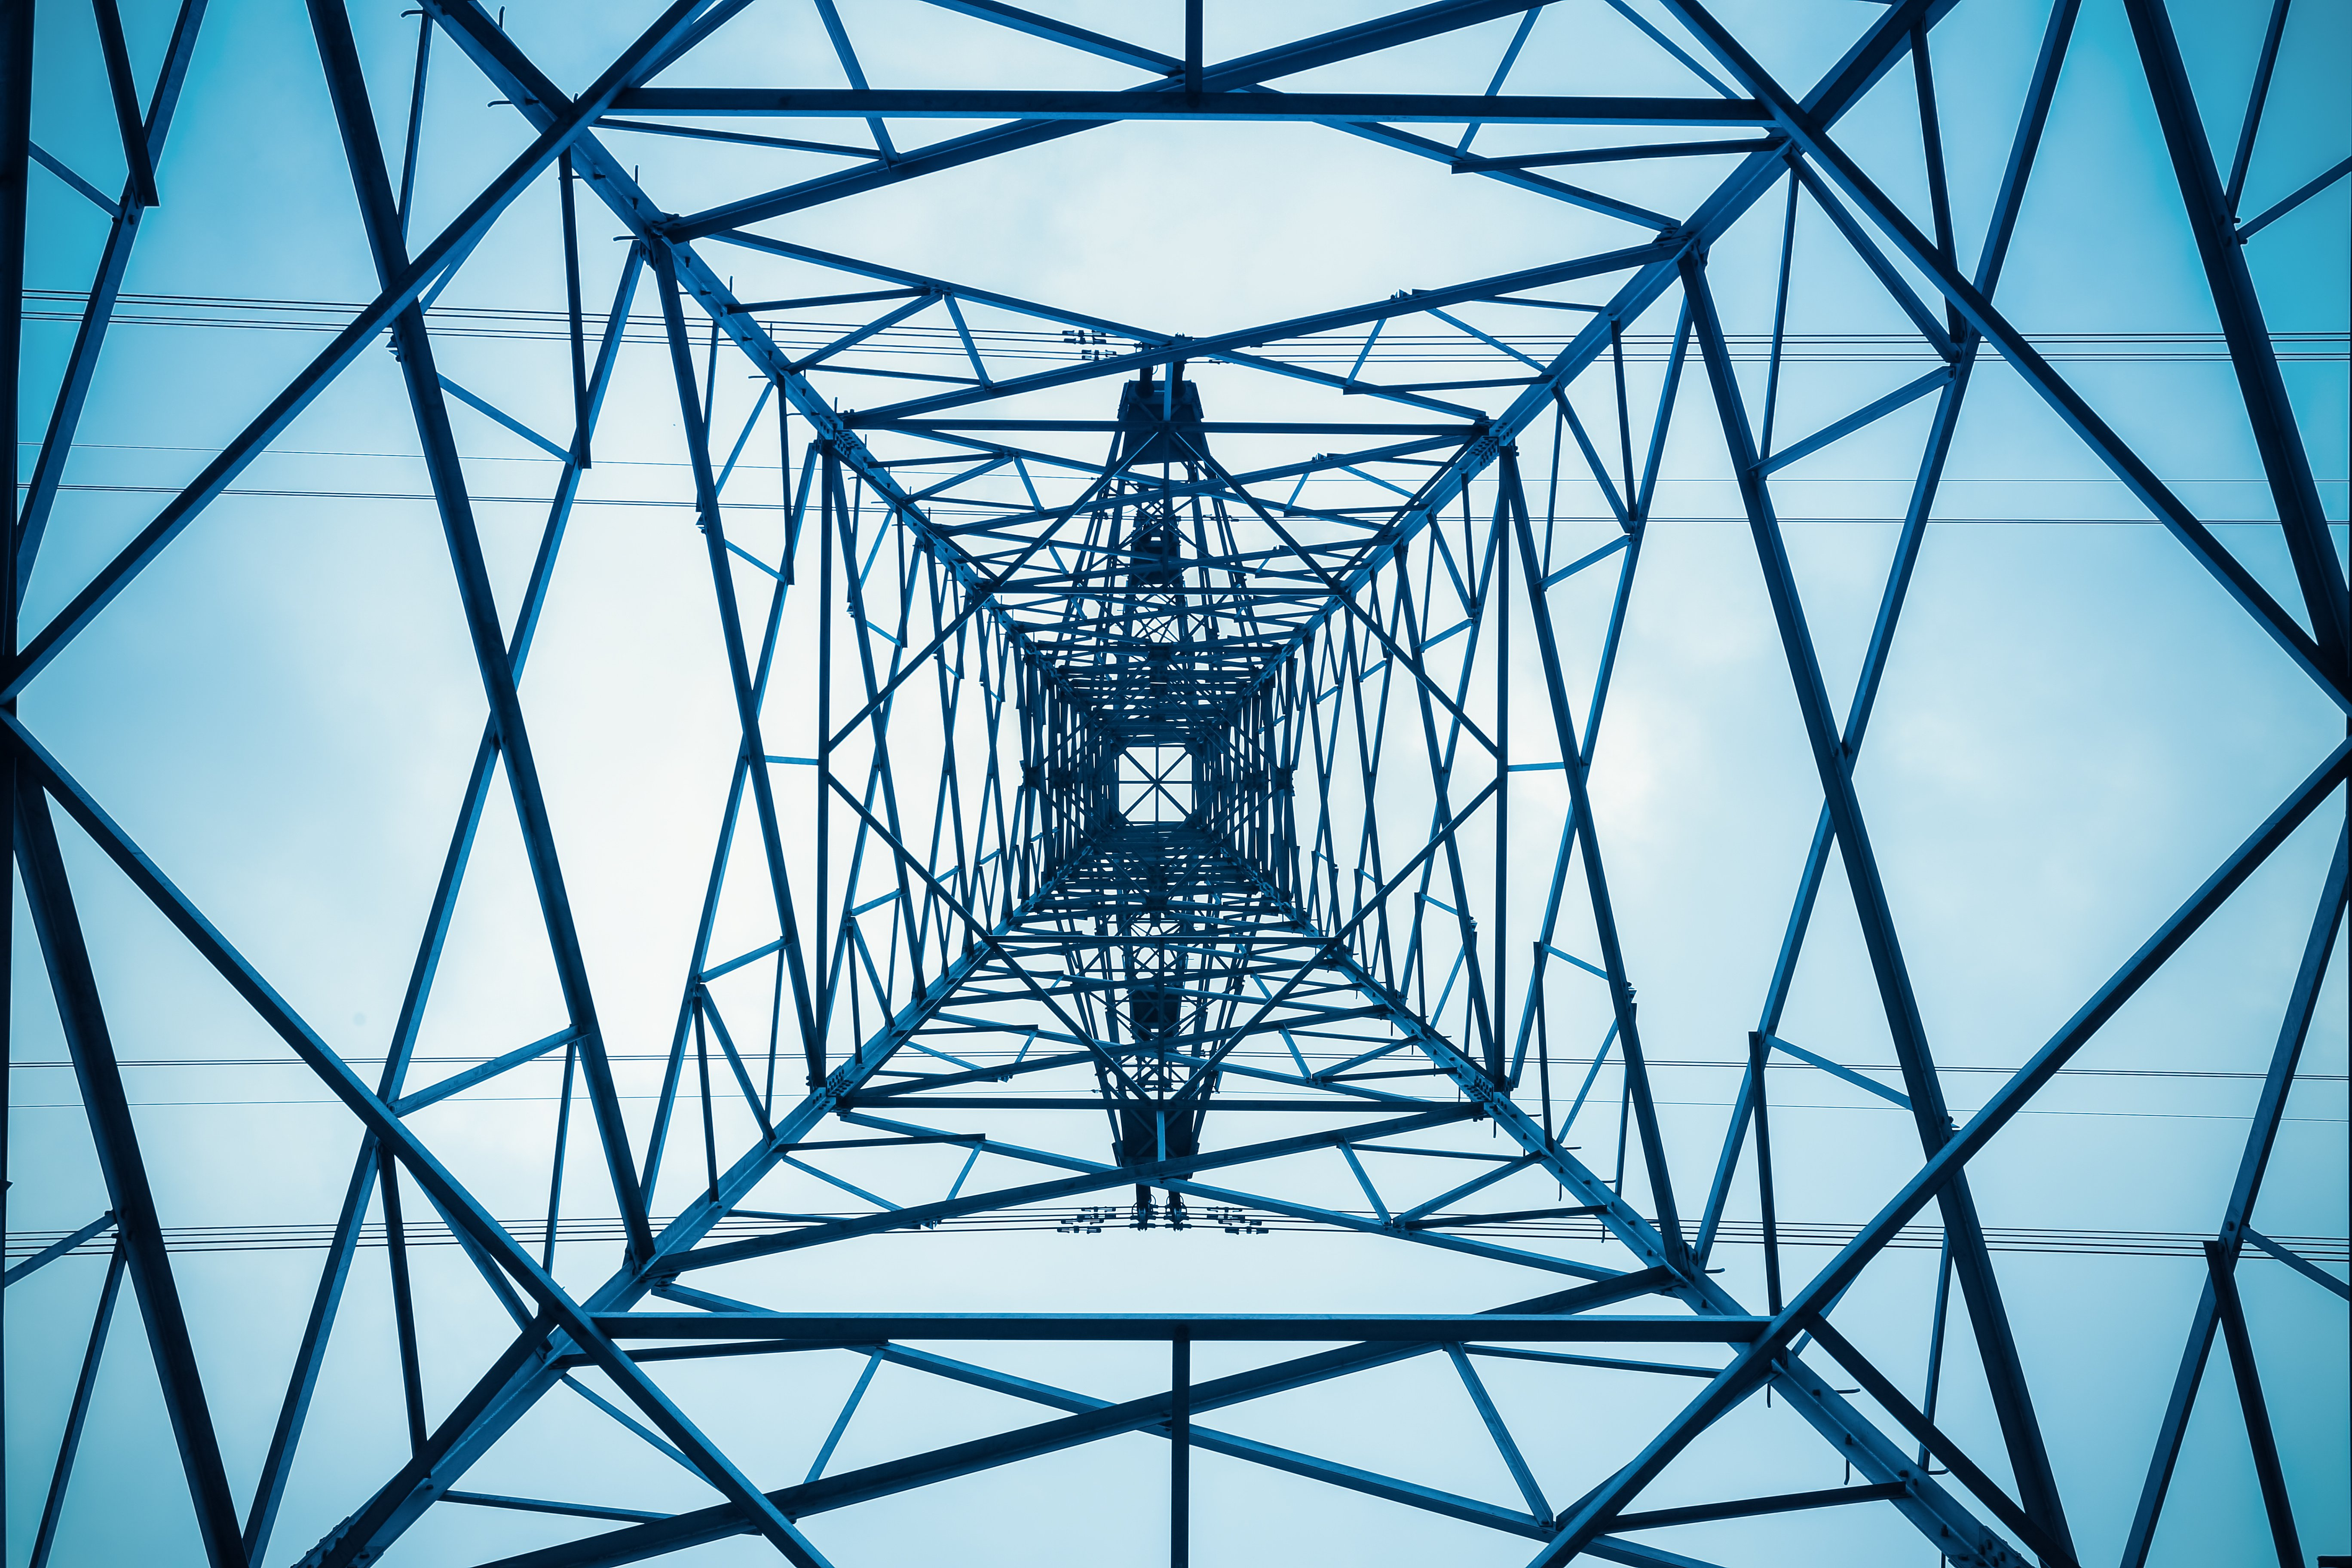 Cybersecurity for U.S. power grid